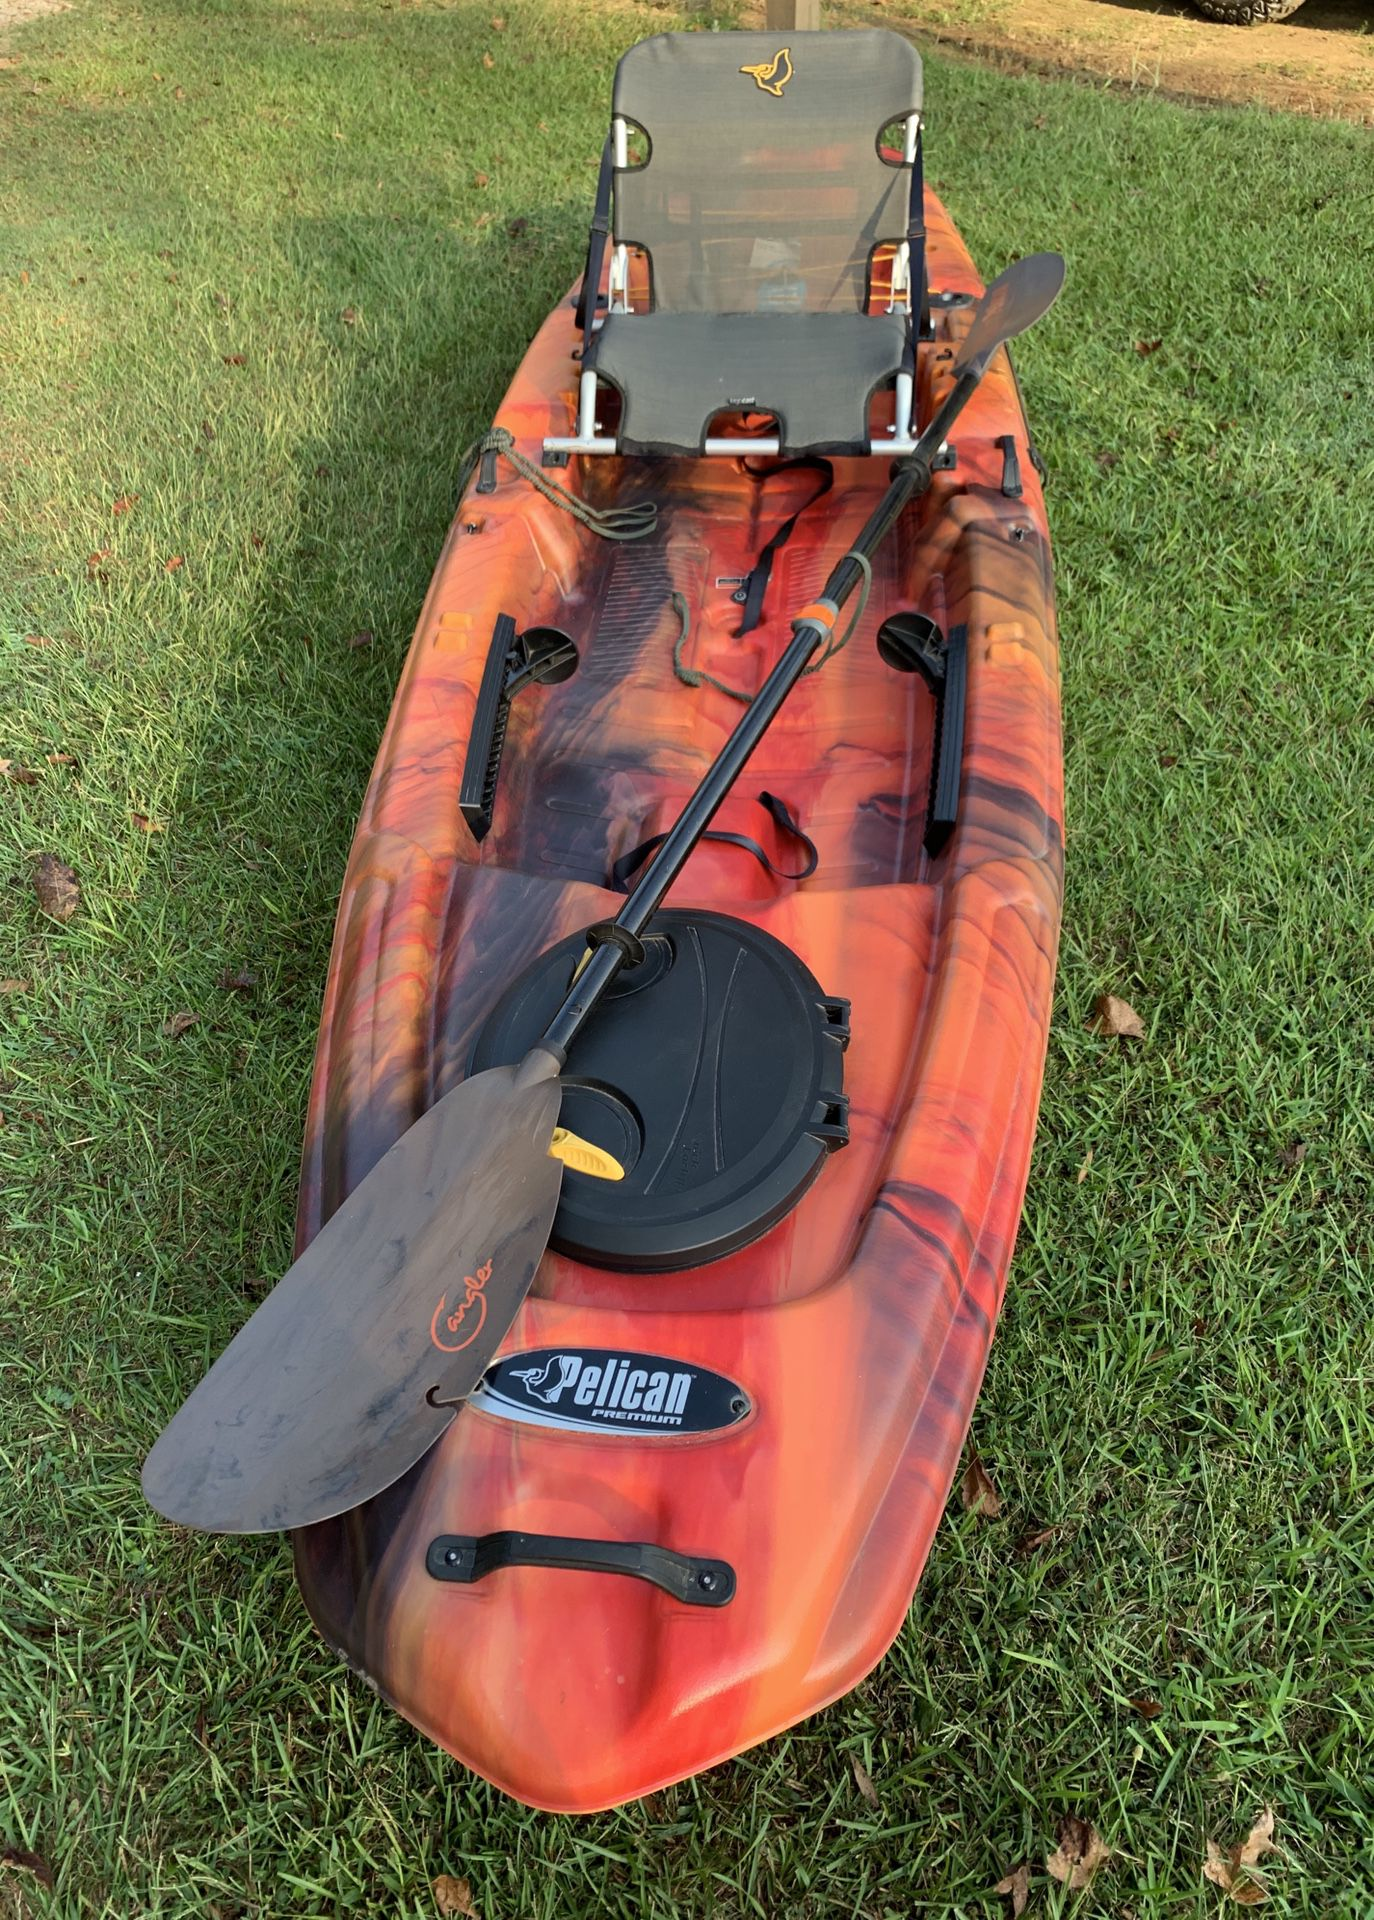 Photo NEVER USED PELICAN PREMIUM 120 KAYAK WITH ANGLER PADDLE!!